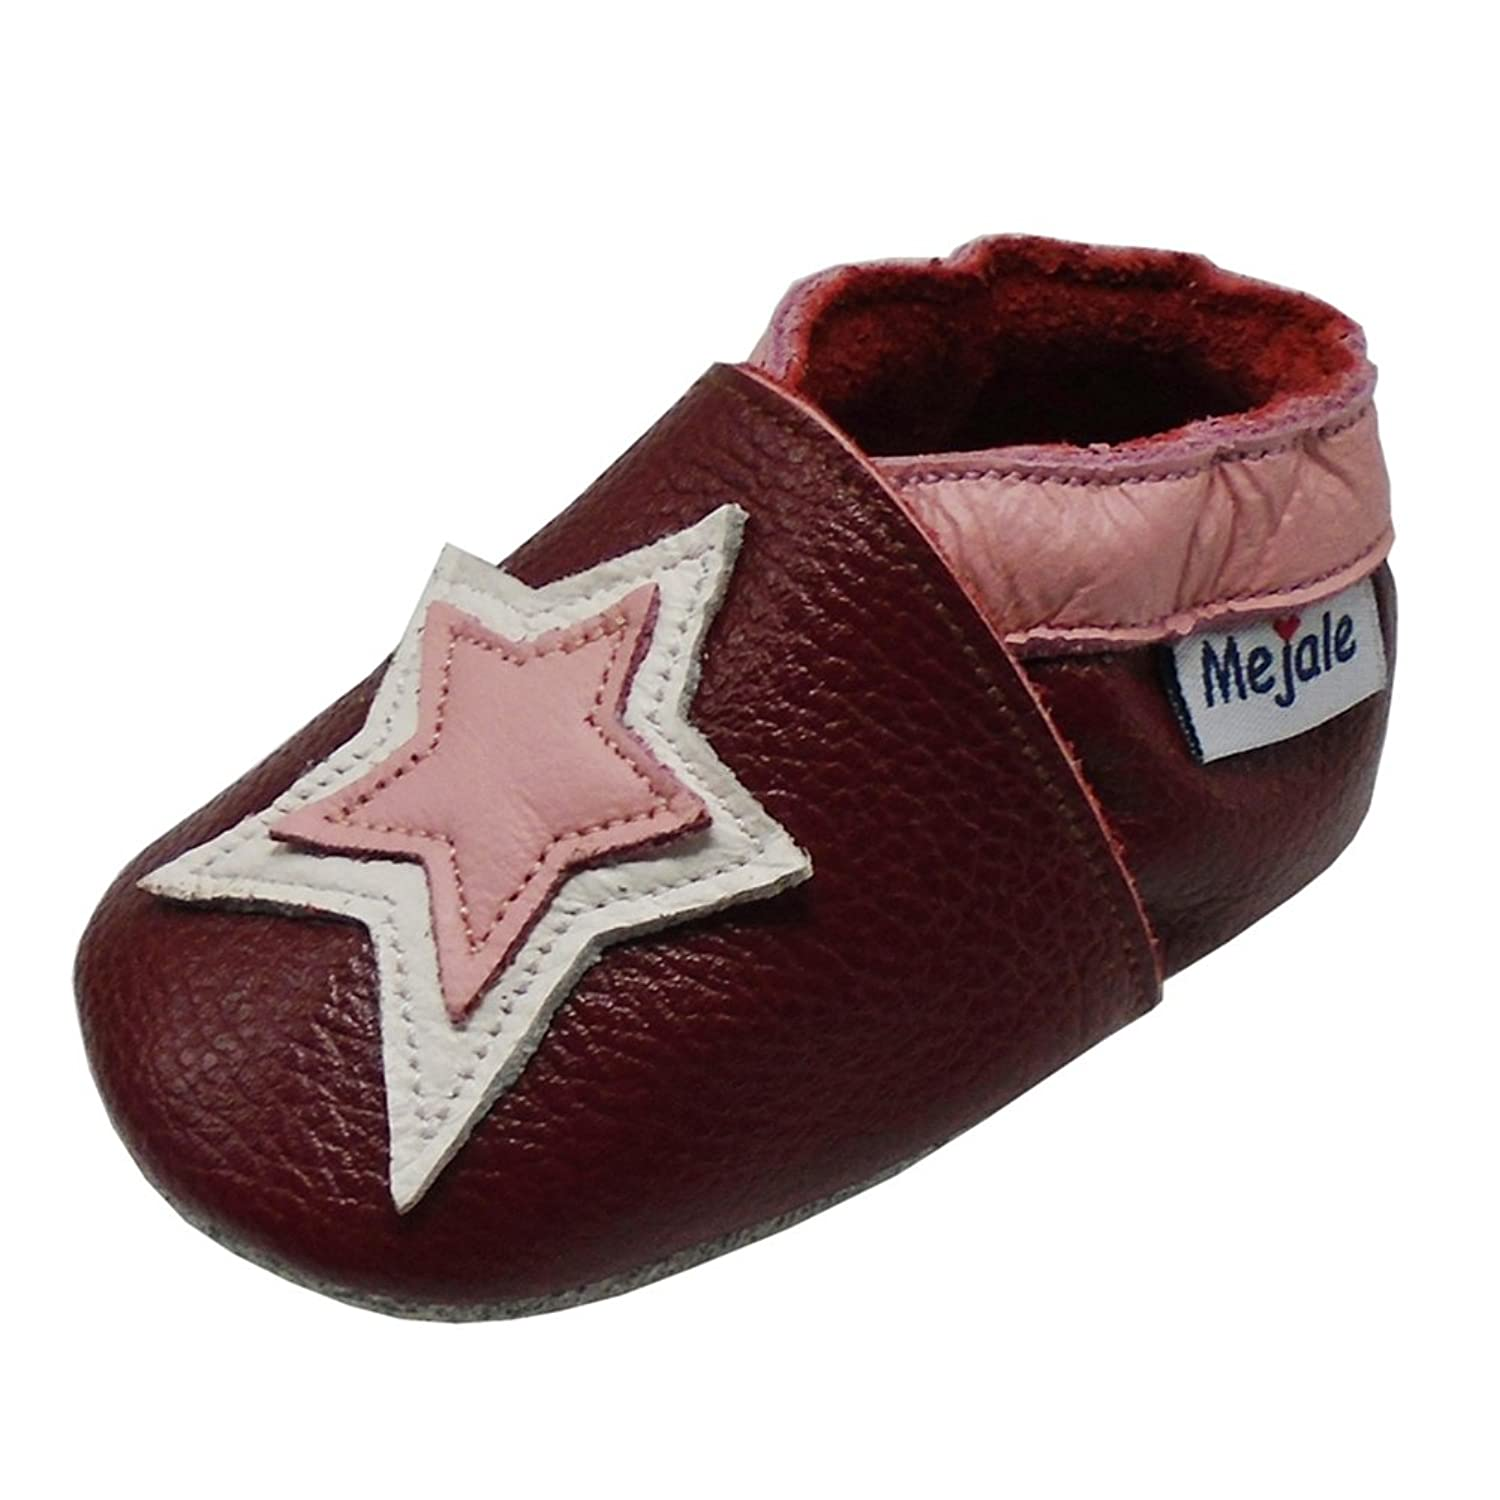 Mejale Baby Shoes Soft Sole Leather Crawling Moccasins Cartoon Star